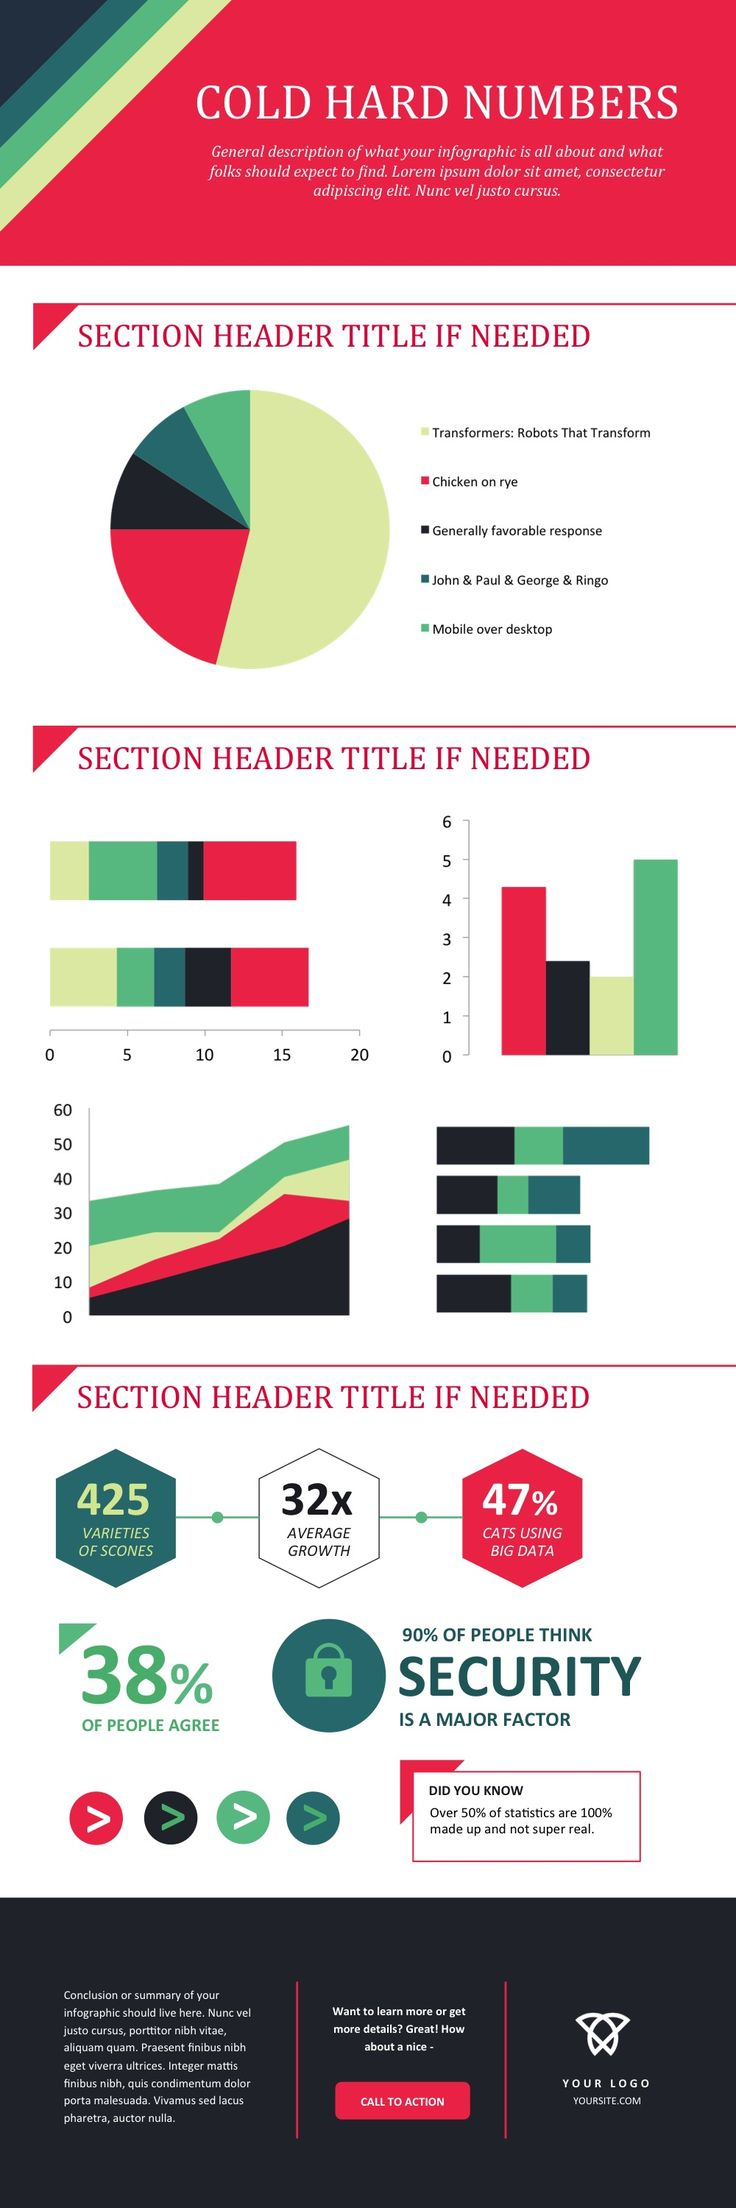 January 27, 2016 // 8:00 AM How to Make an Infographic in Under an Hour [15 Free Infographic Templates]